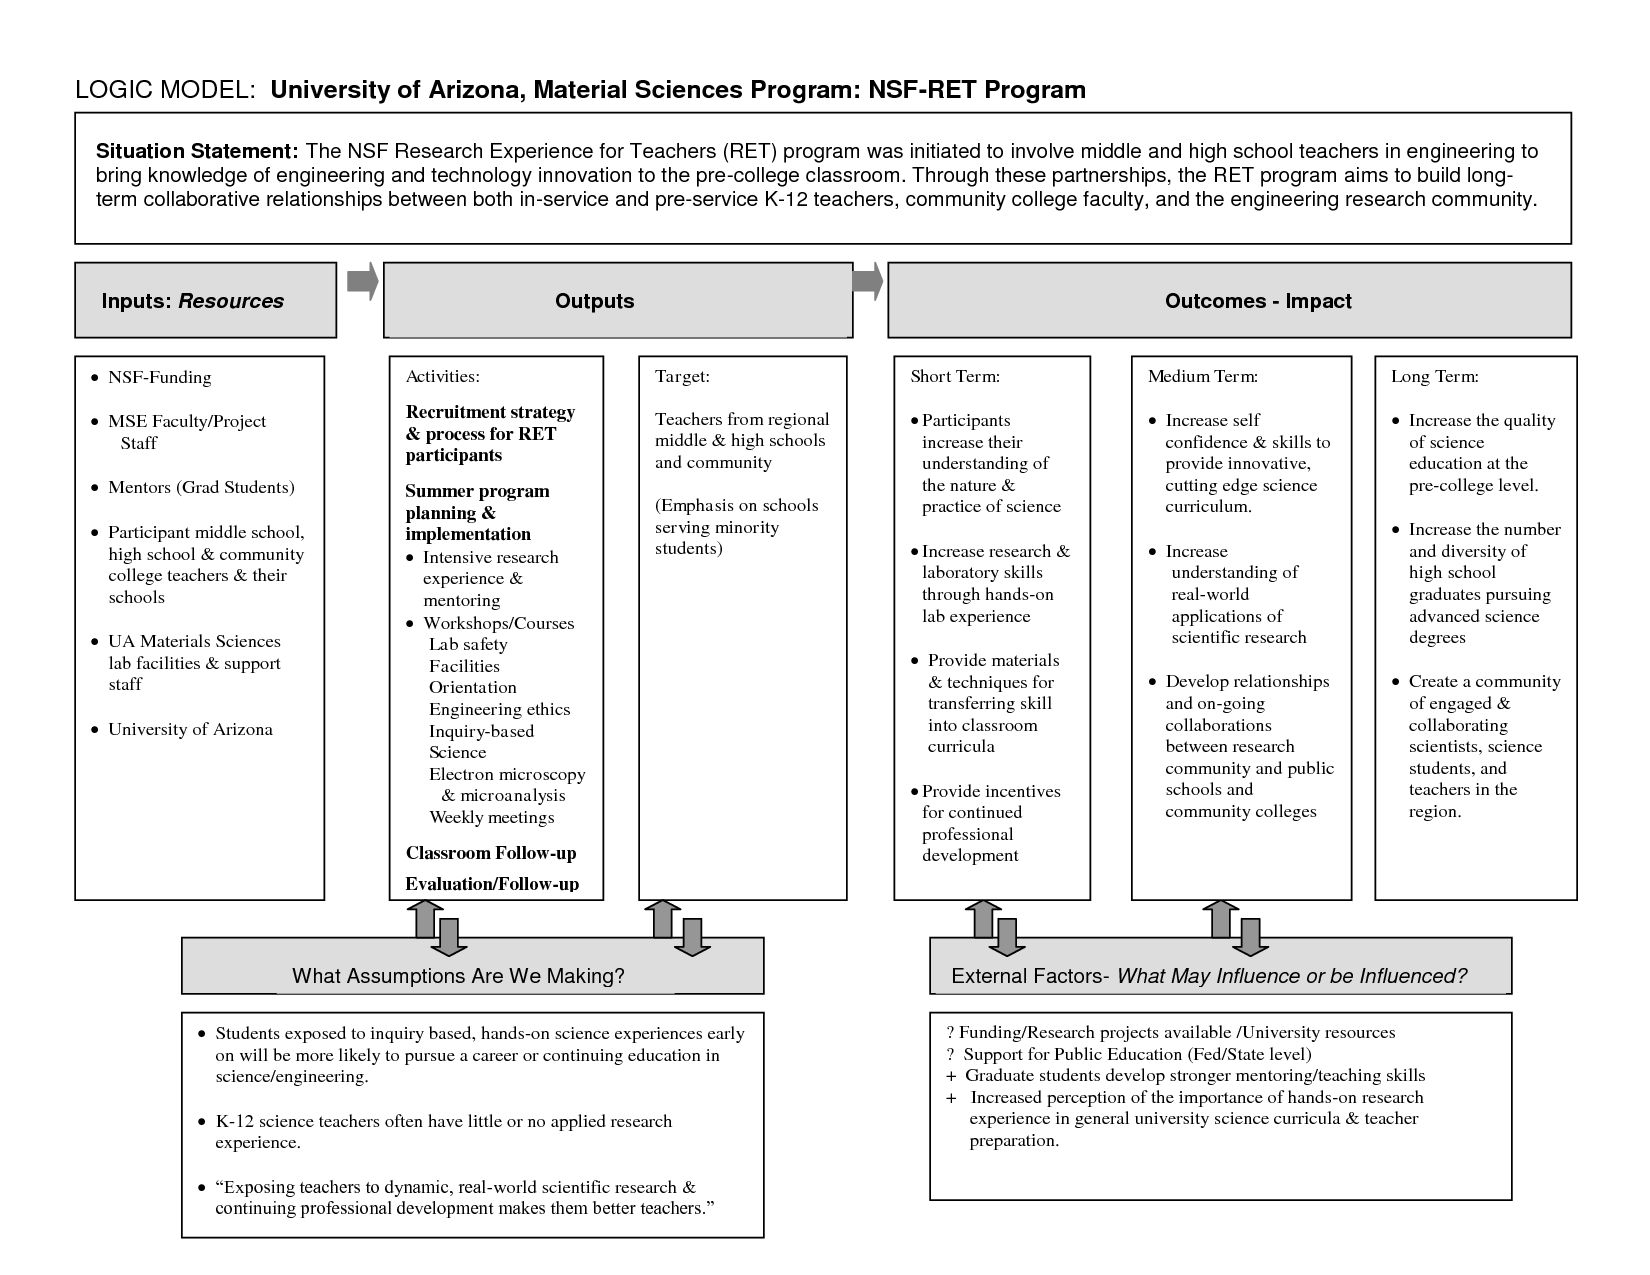 Model Worksheet